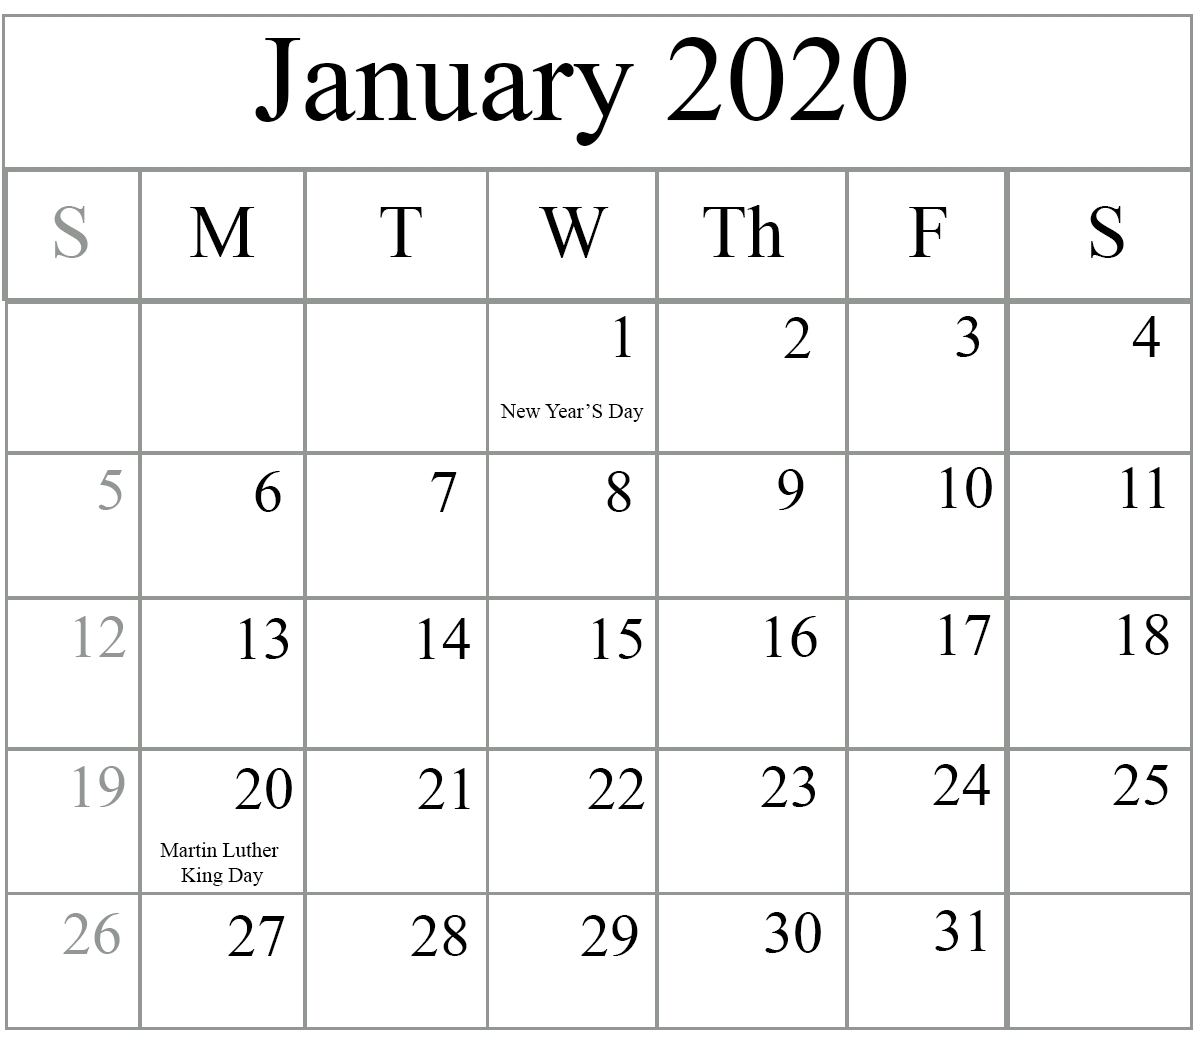 January 2020 Monthly Calendar Date And Time | Calendar